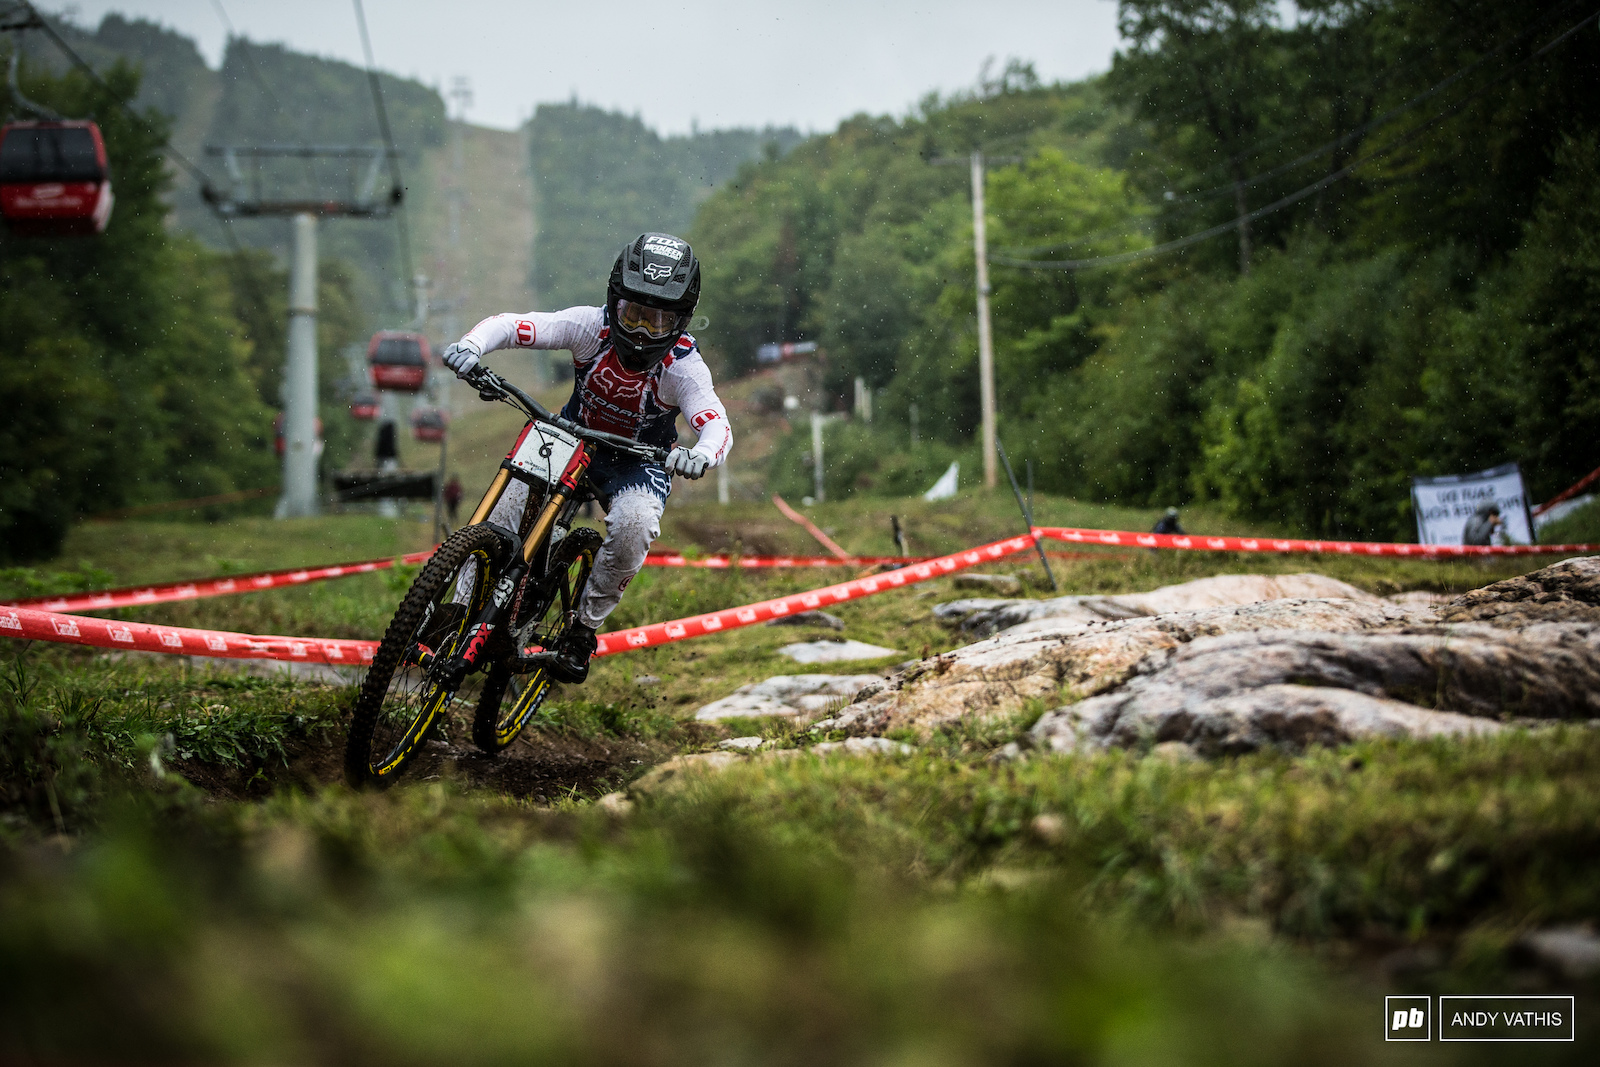 Laurie Greenland s wheel decided it had enough of the Mont Sainte Anne rocks during seeding runs. Luckily he has another full day of practice tomorrow to sort that out.